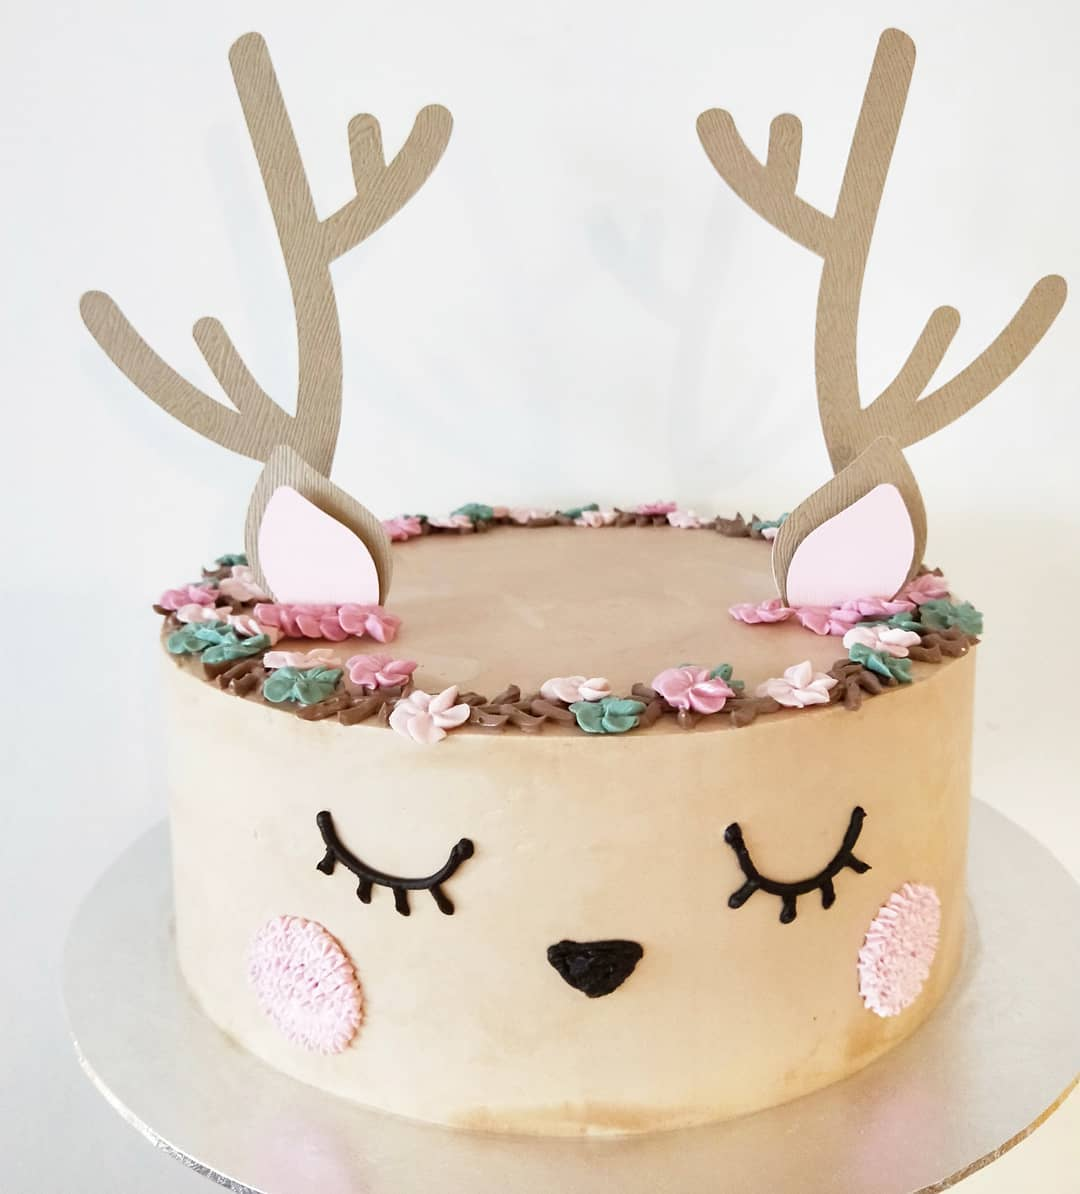 Ugly Cake Shop - customised cakes